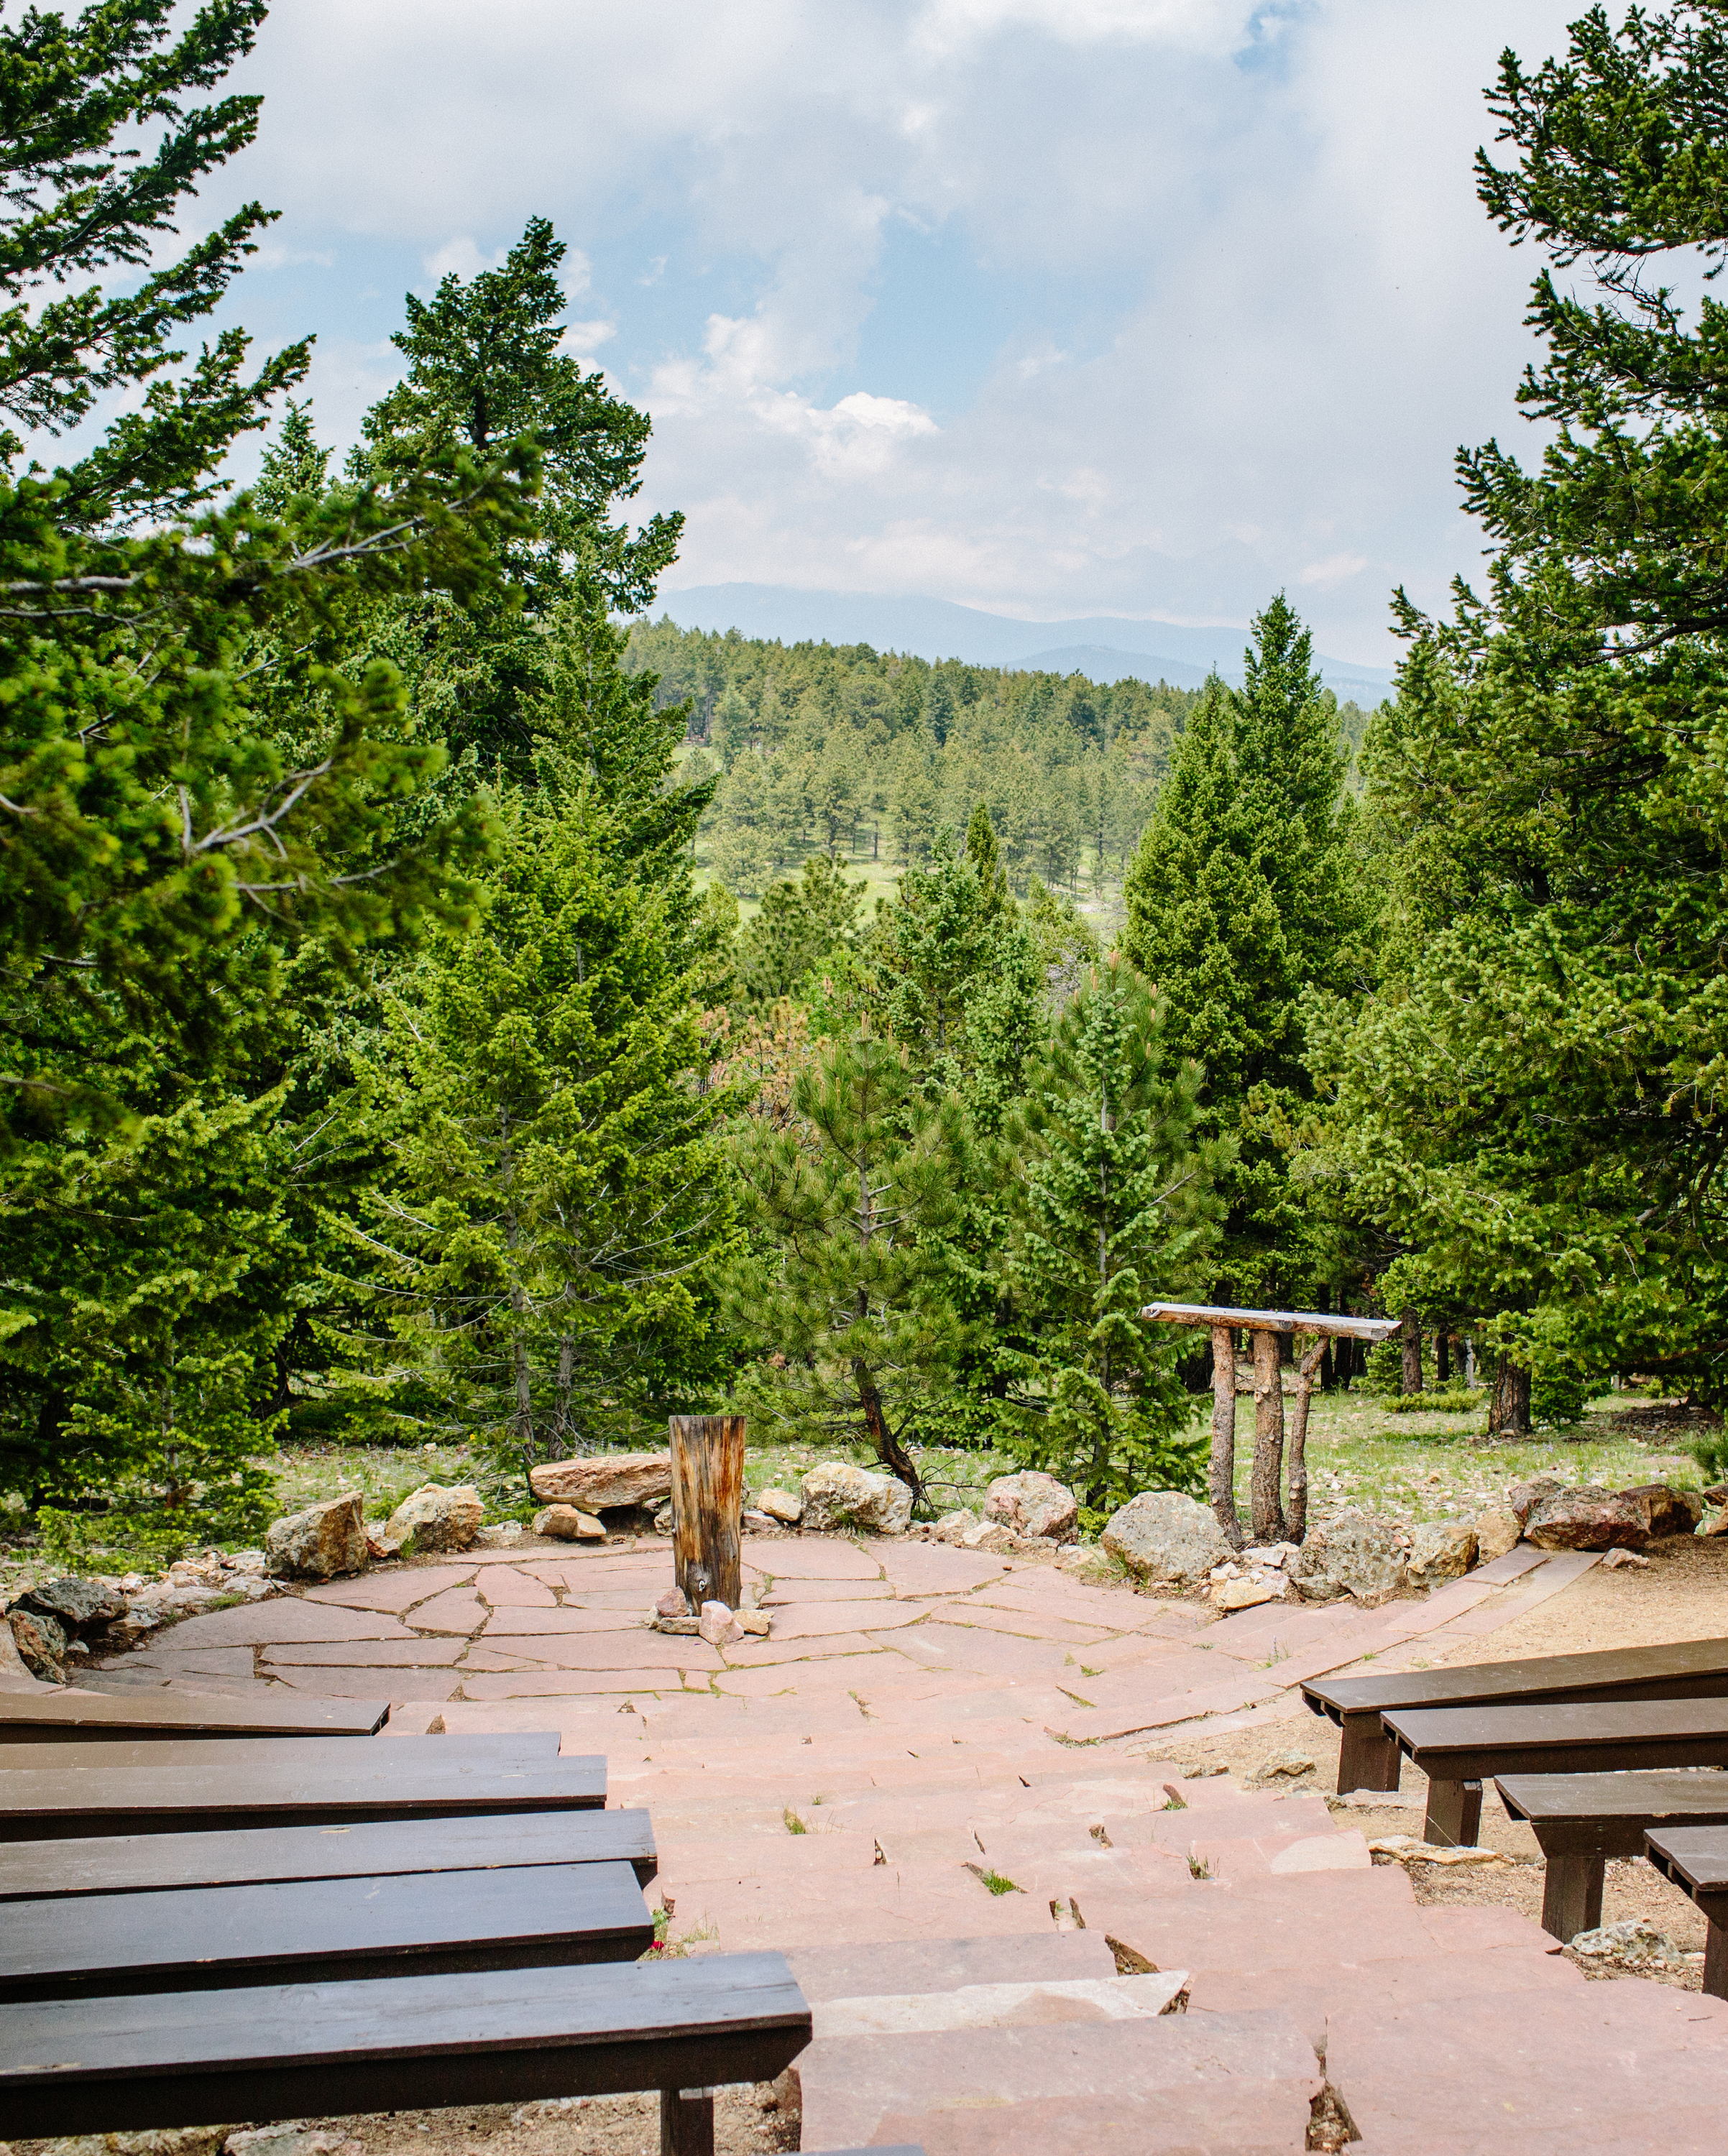 Beach Wedding Venues Washington State: 18 Summer Camp Wedding Venues For Kicking Back And Getting